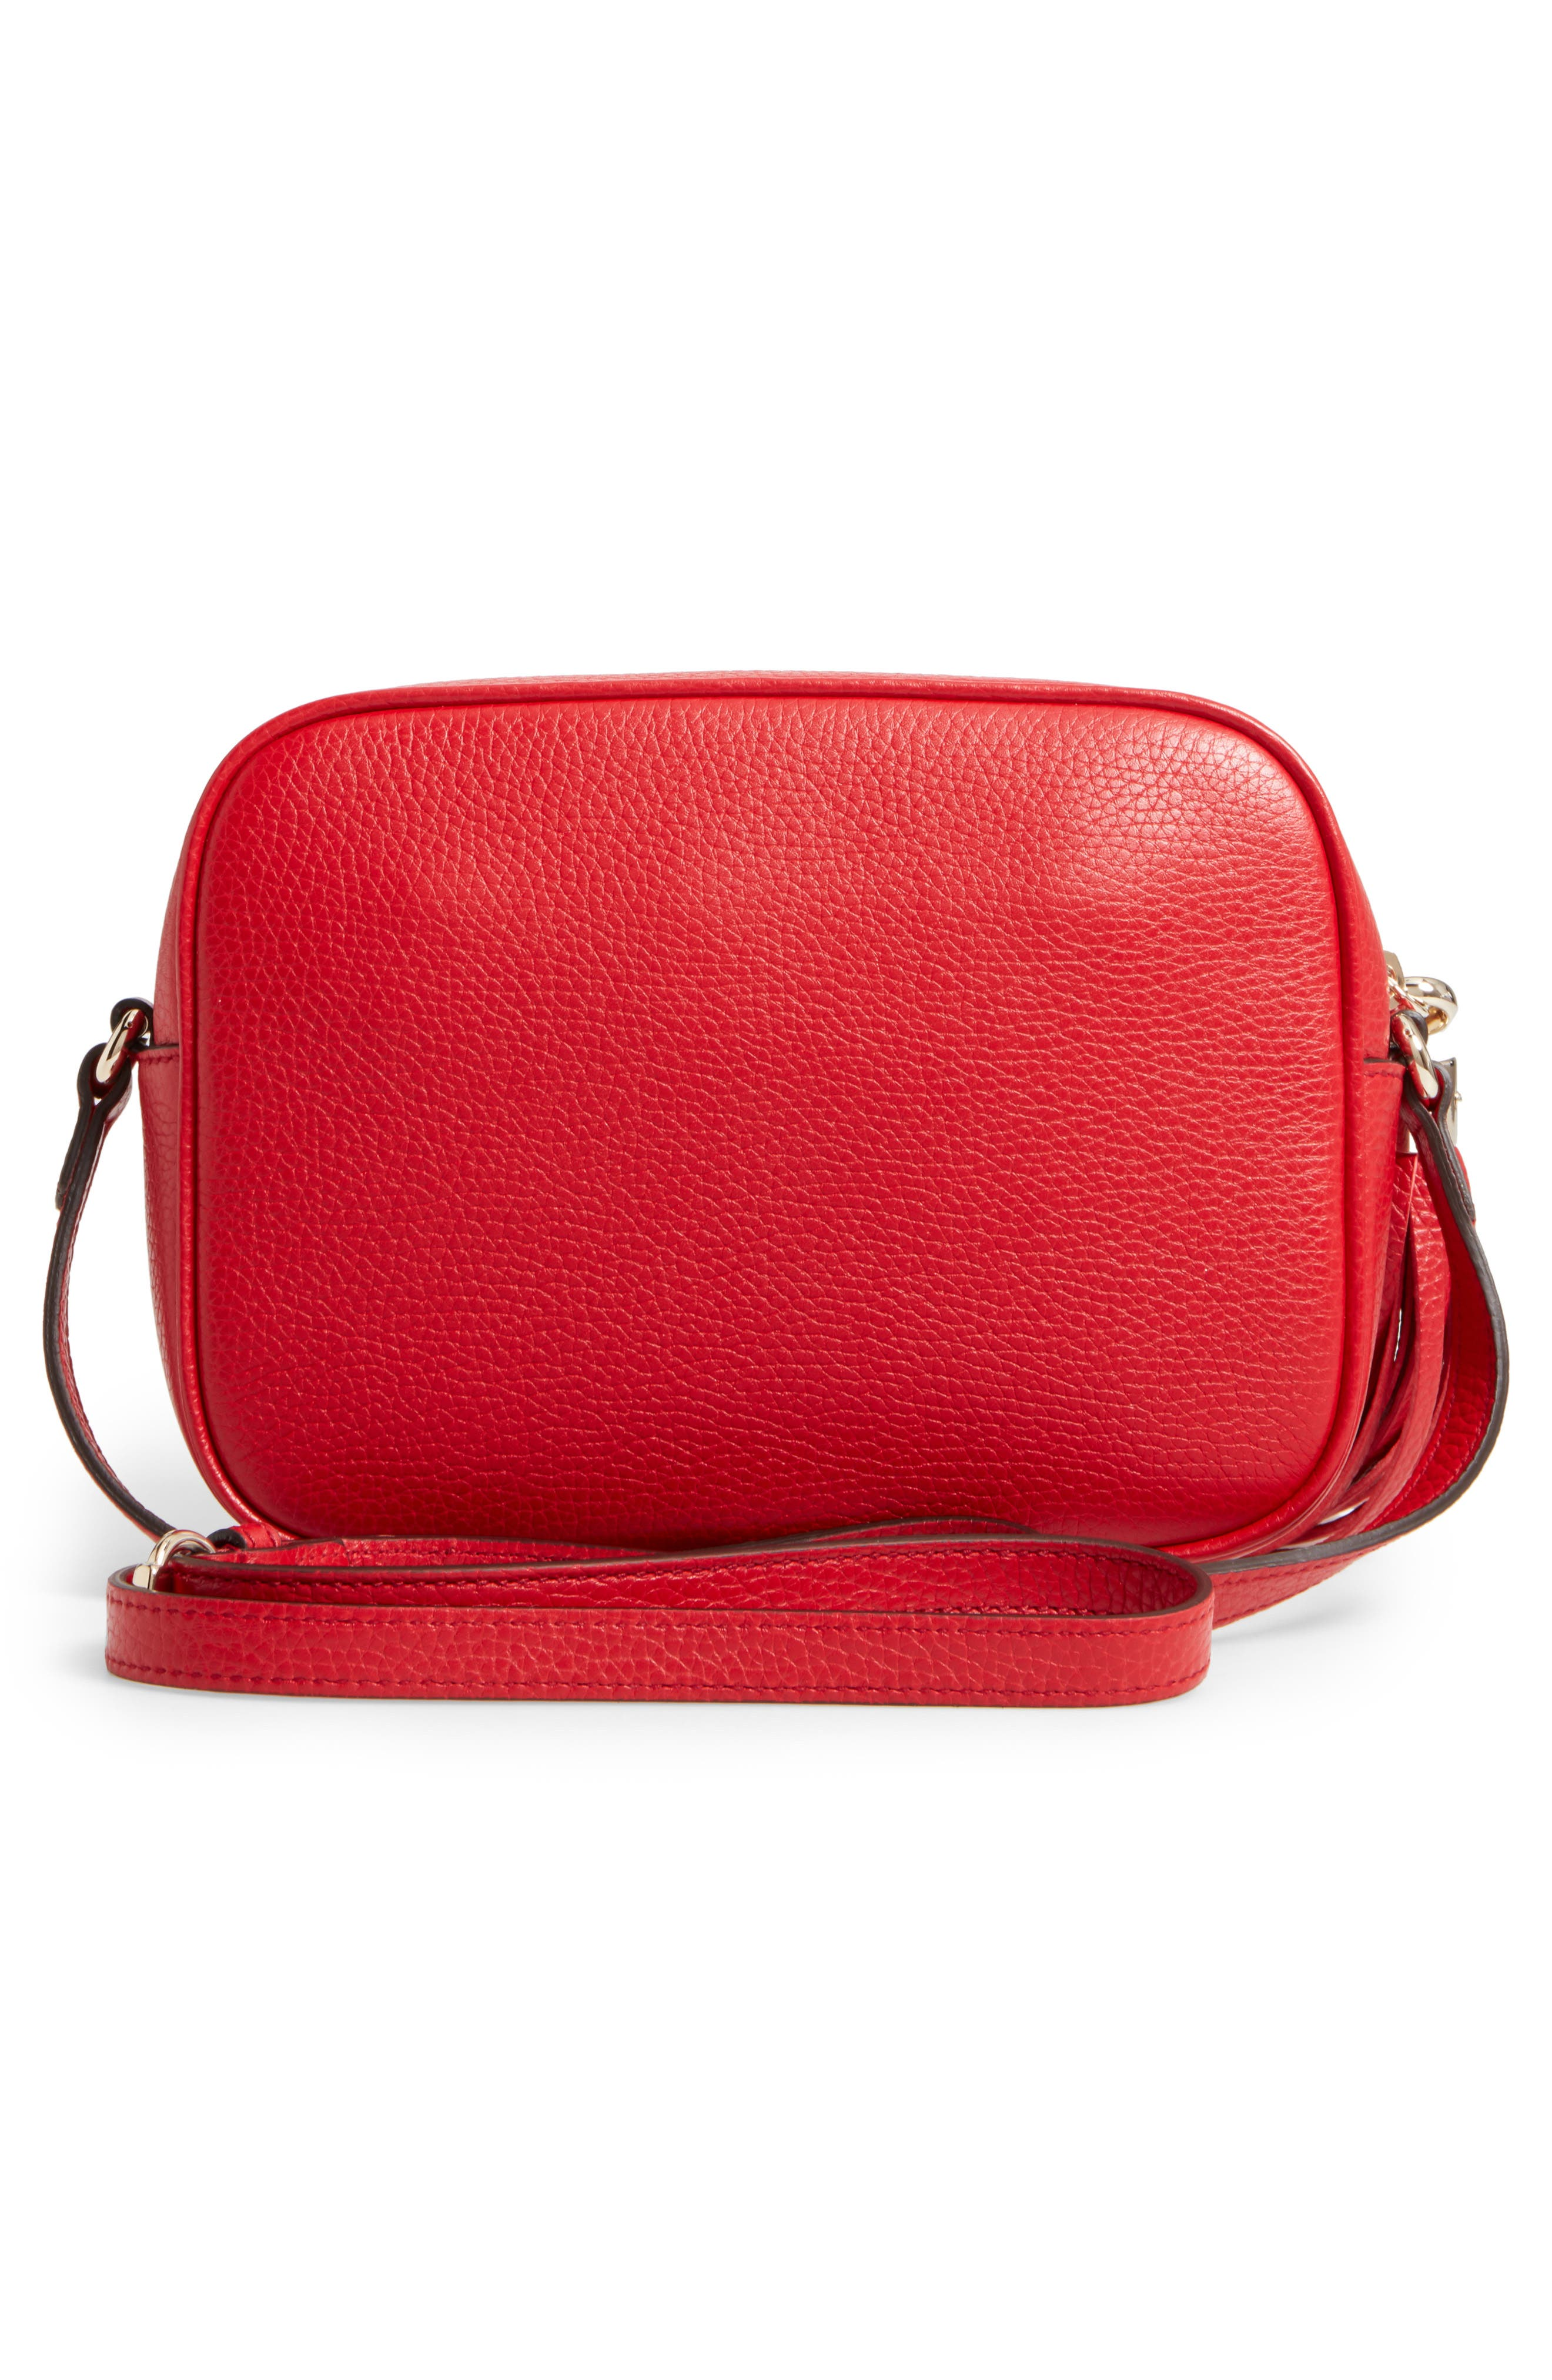 Gucci Soho Disco Textured-Leather Shoulder Bag In Red